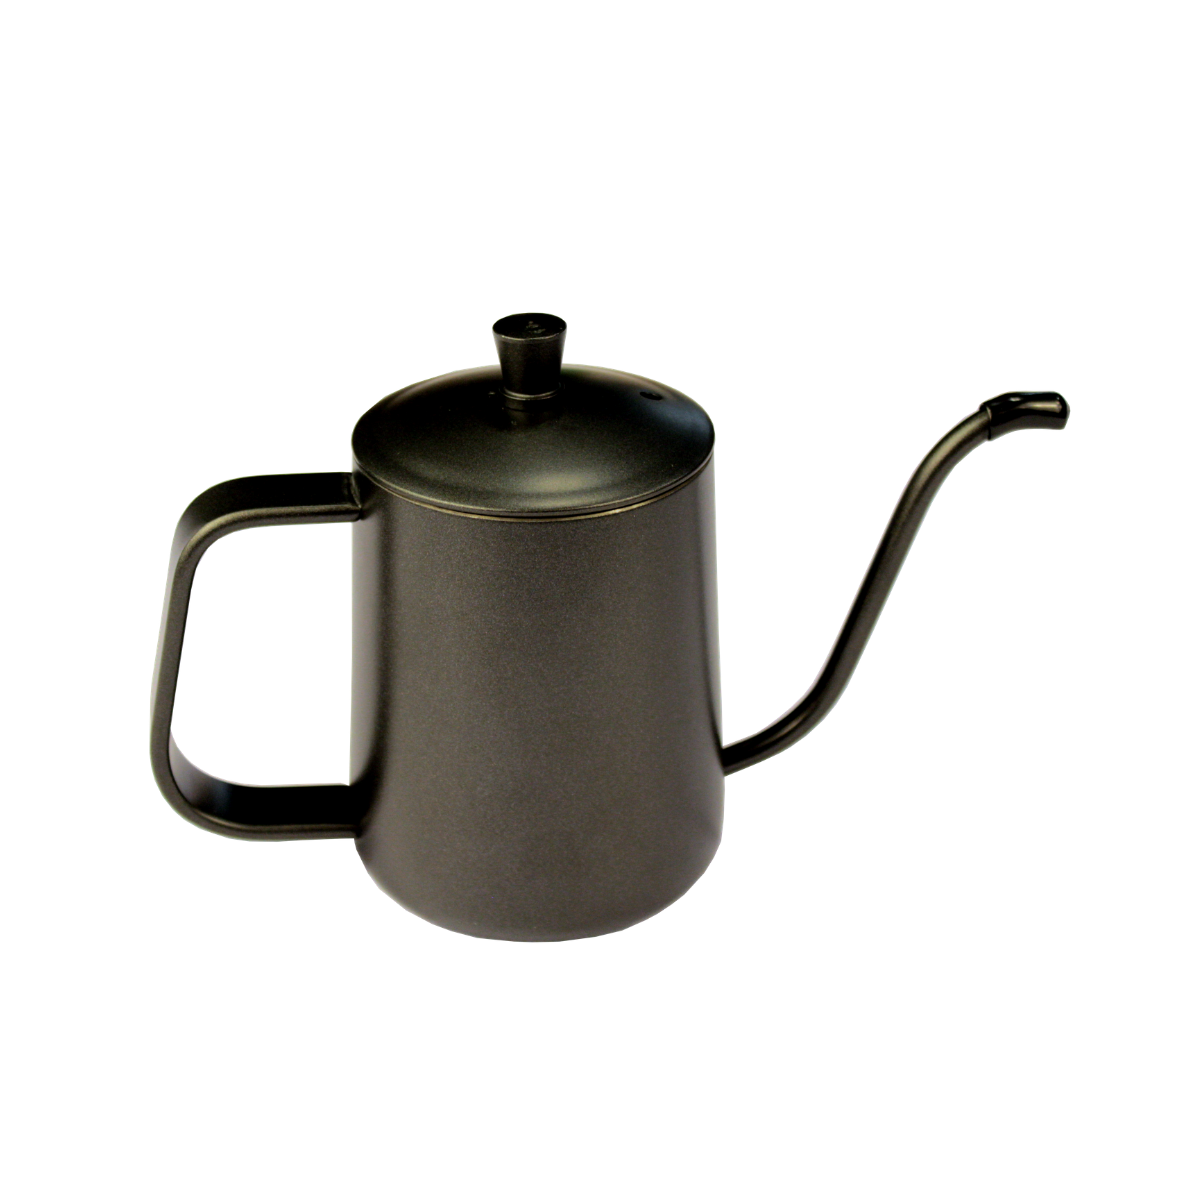 Every Day Coffee Kettle